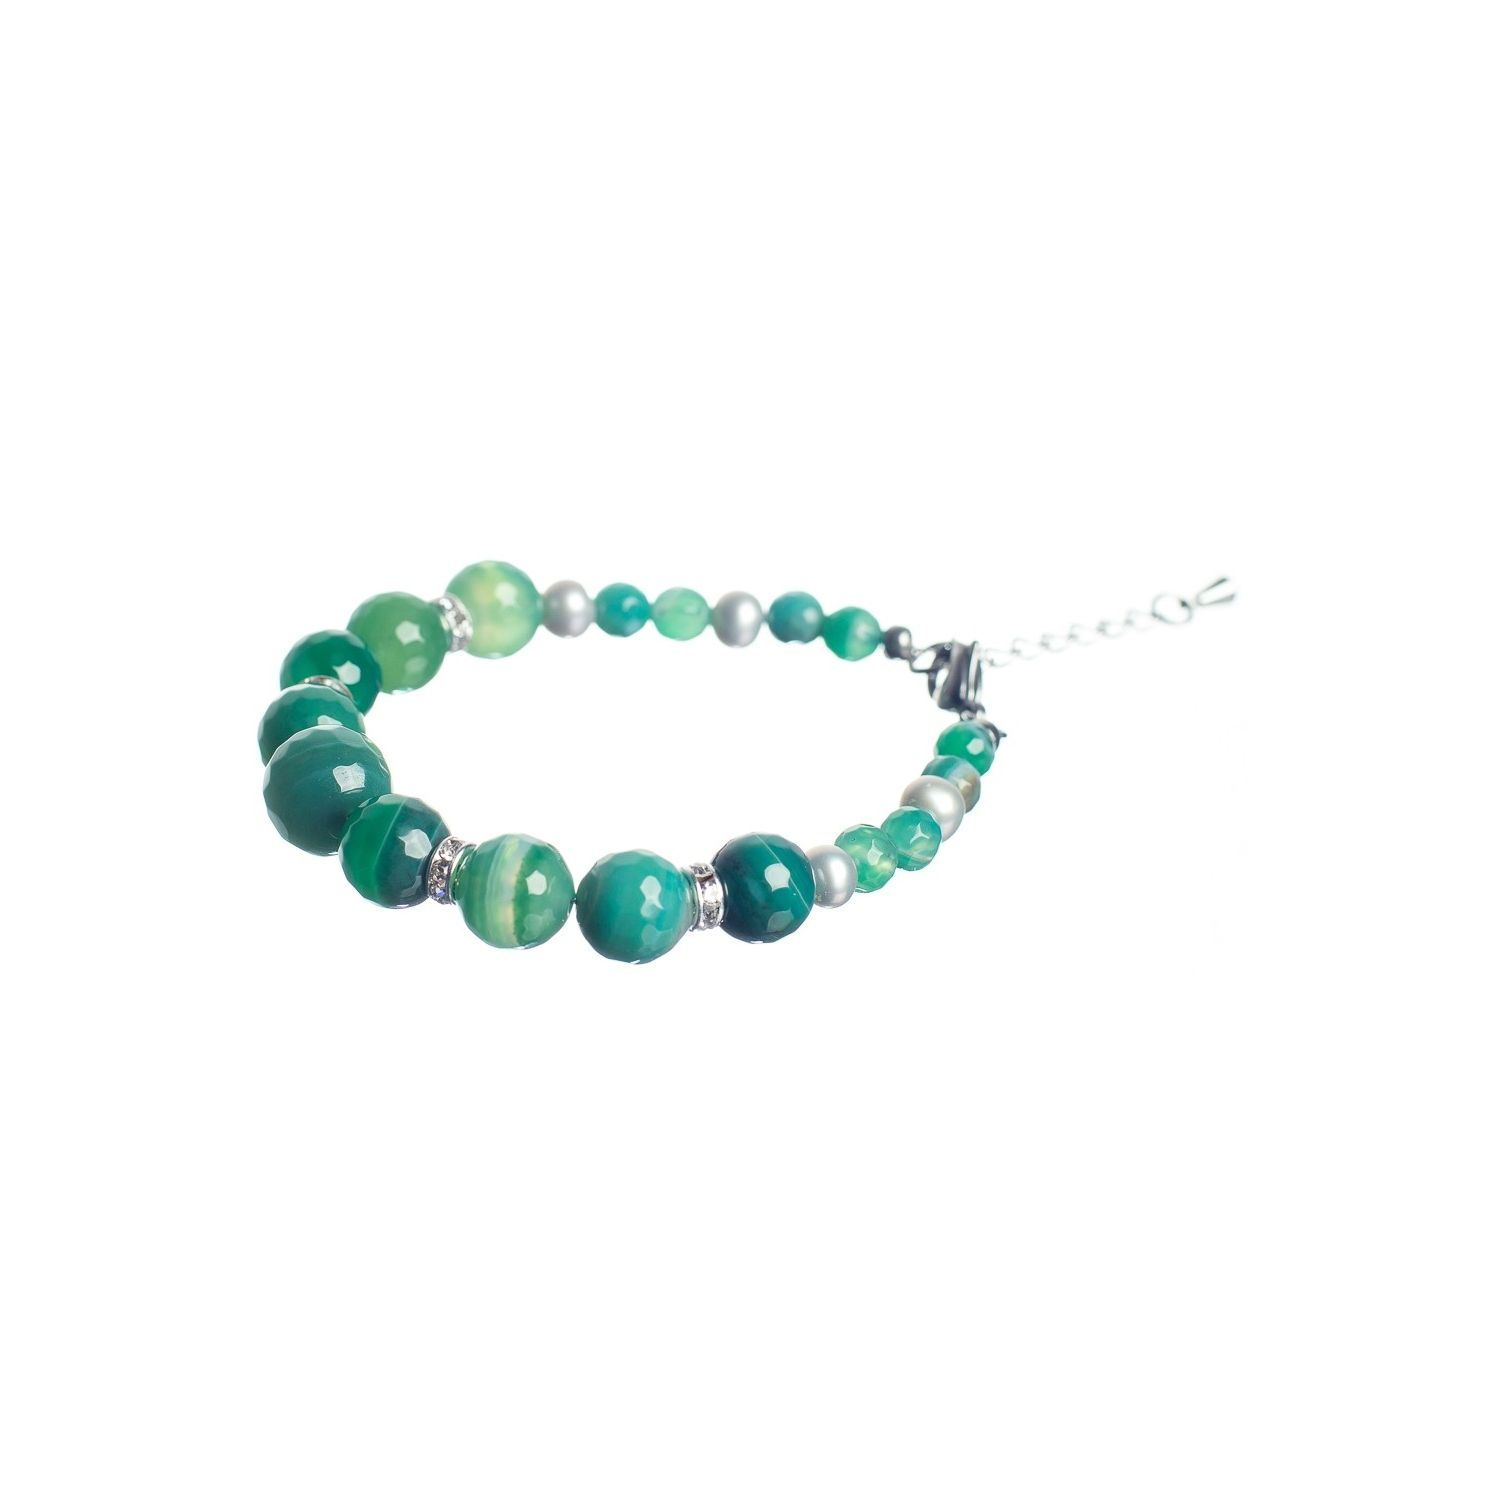 Pastel Green Lace Agates Luxury Bracelet